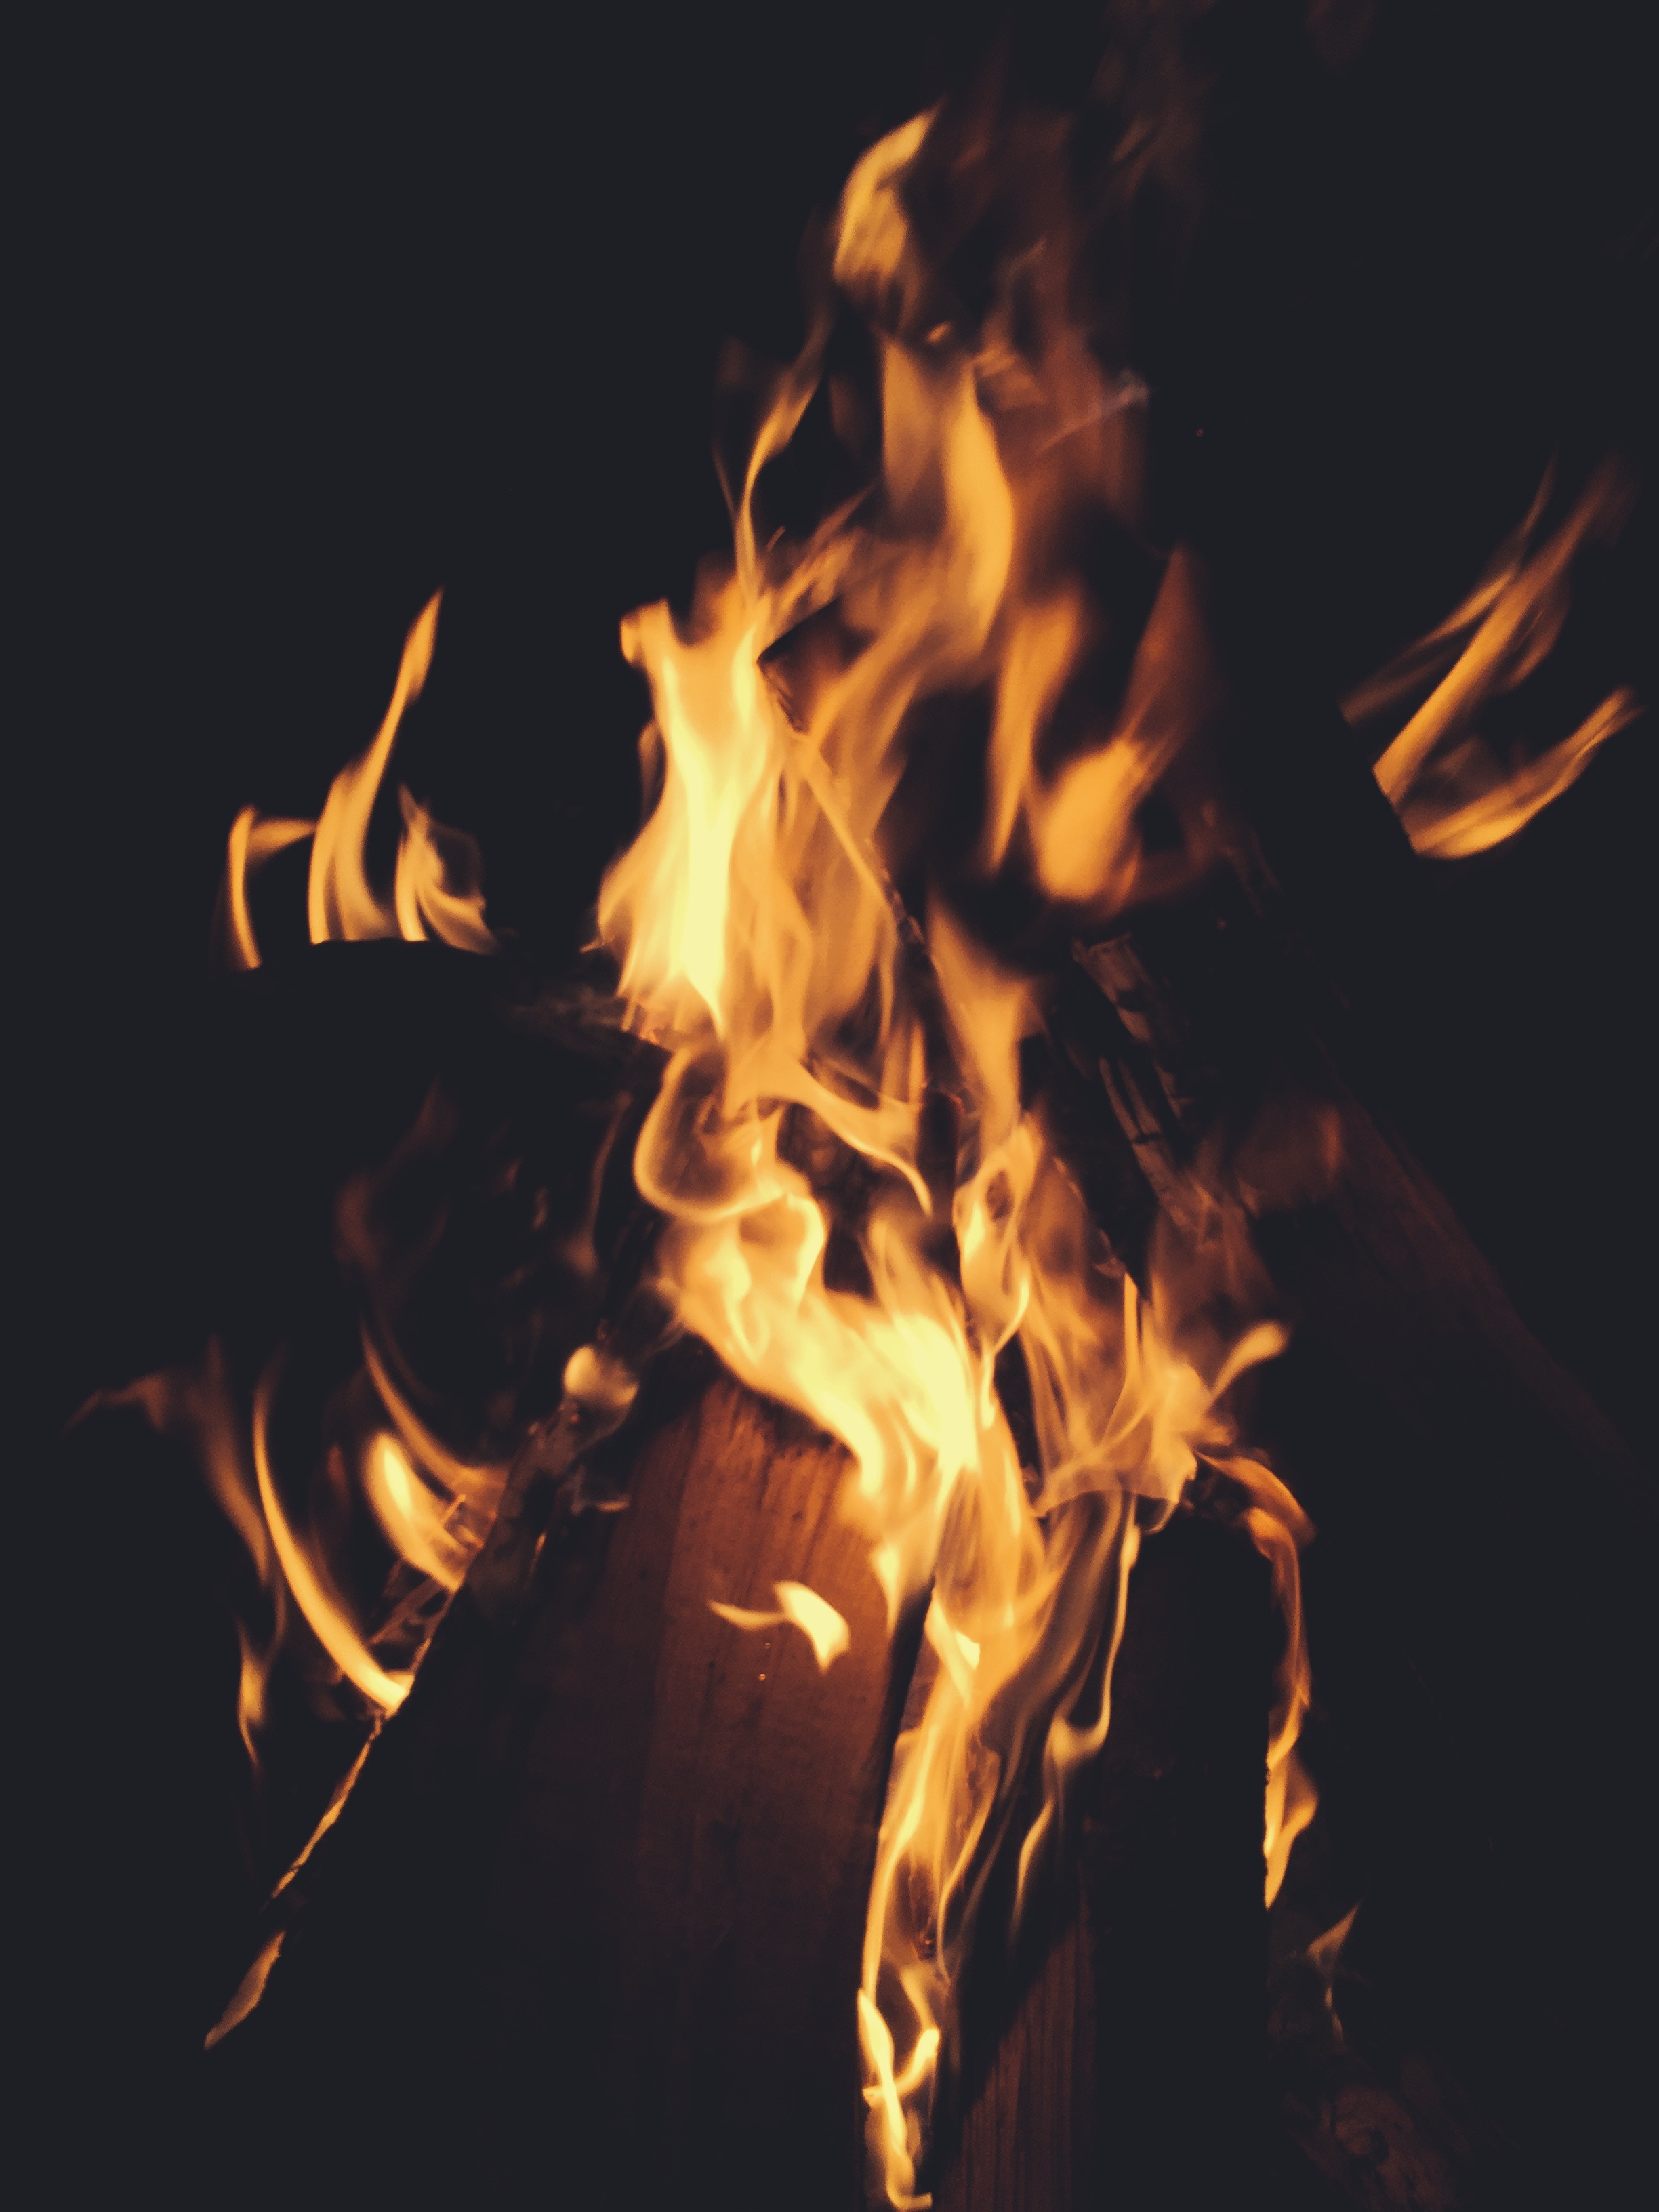 81692 Screensavers and Wallpapers Firewood for phone. Download Fire, Bonfire, Dark, Flame, Firewood pictures for free